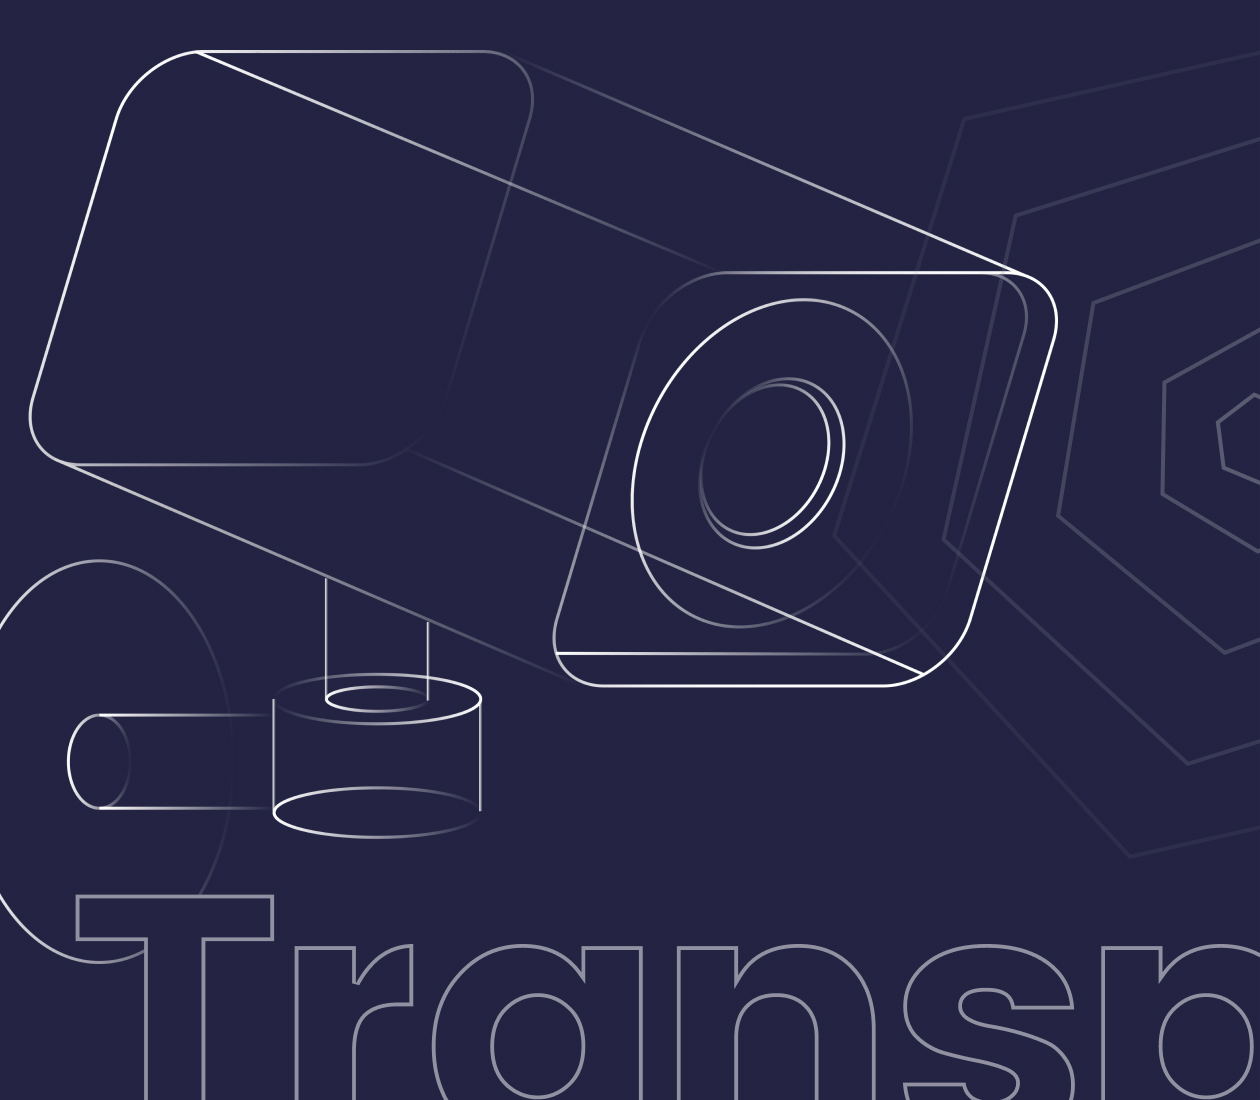 A security camera in Finite State's illustration style